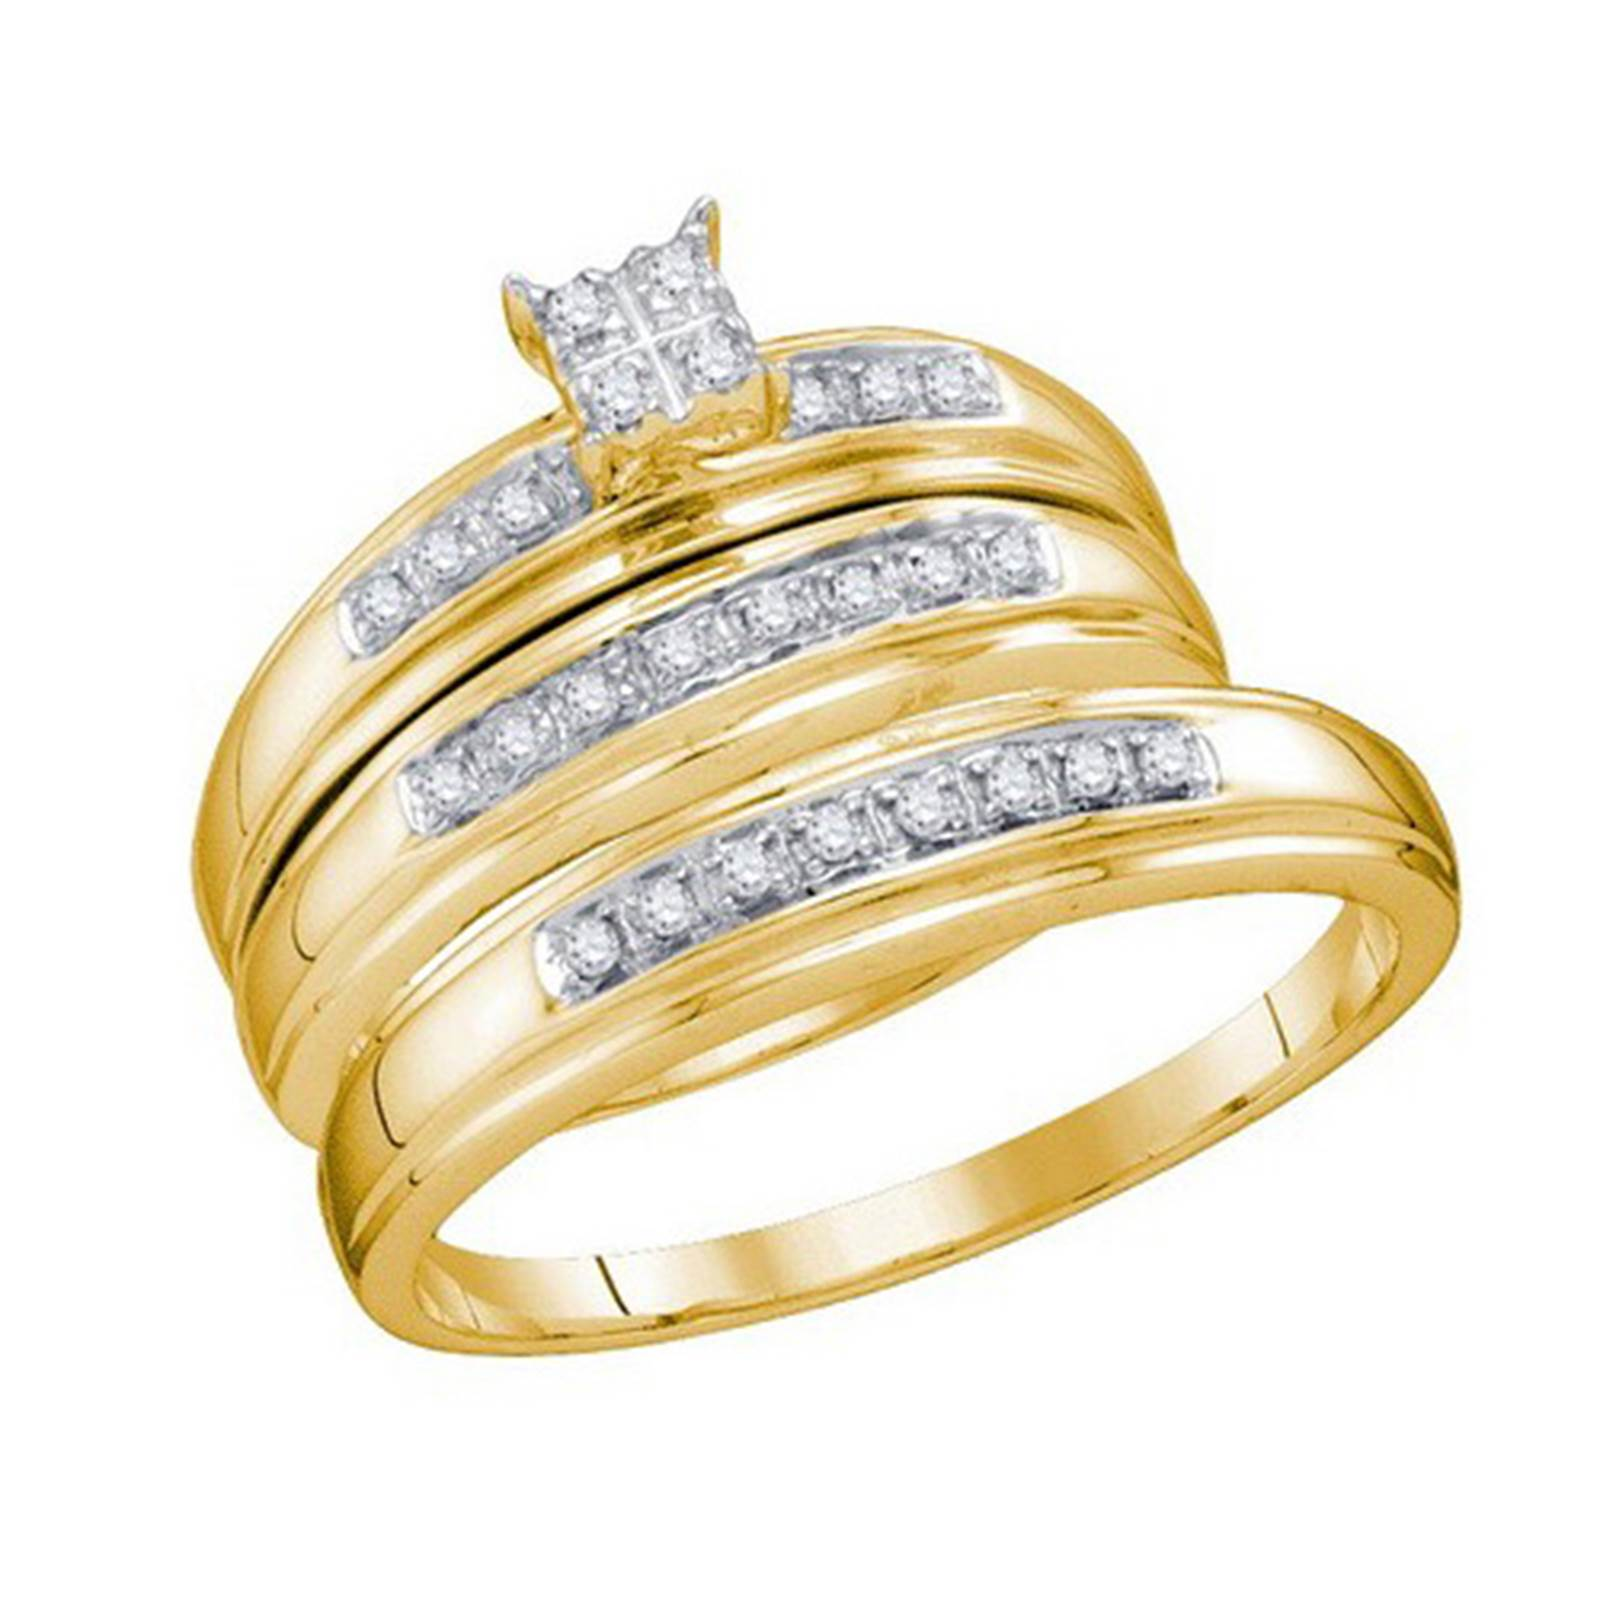 Bride Groom 10k Yellow Gold Diamond Cluster Trio Bridal Ring Set